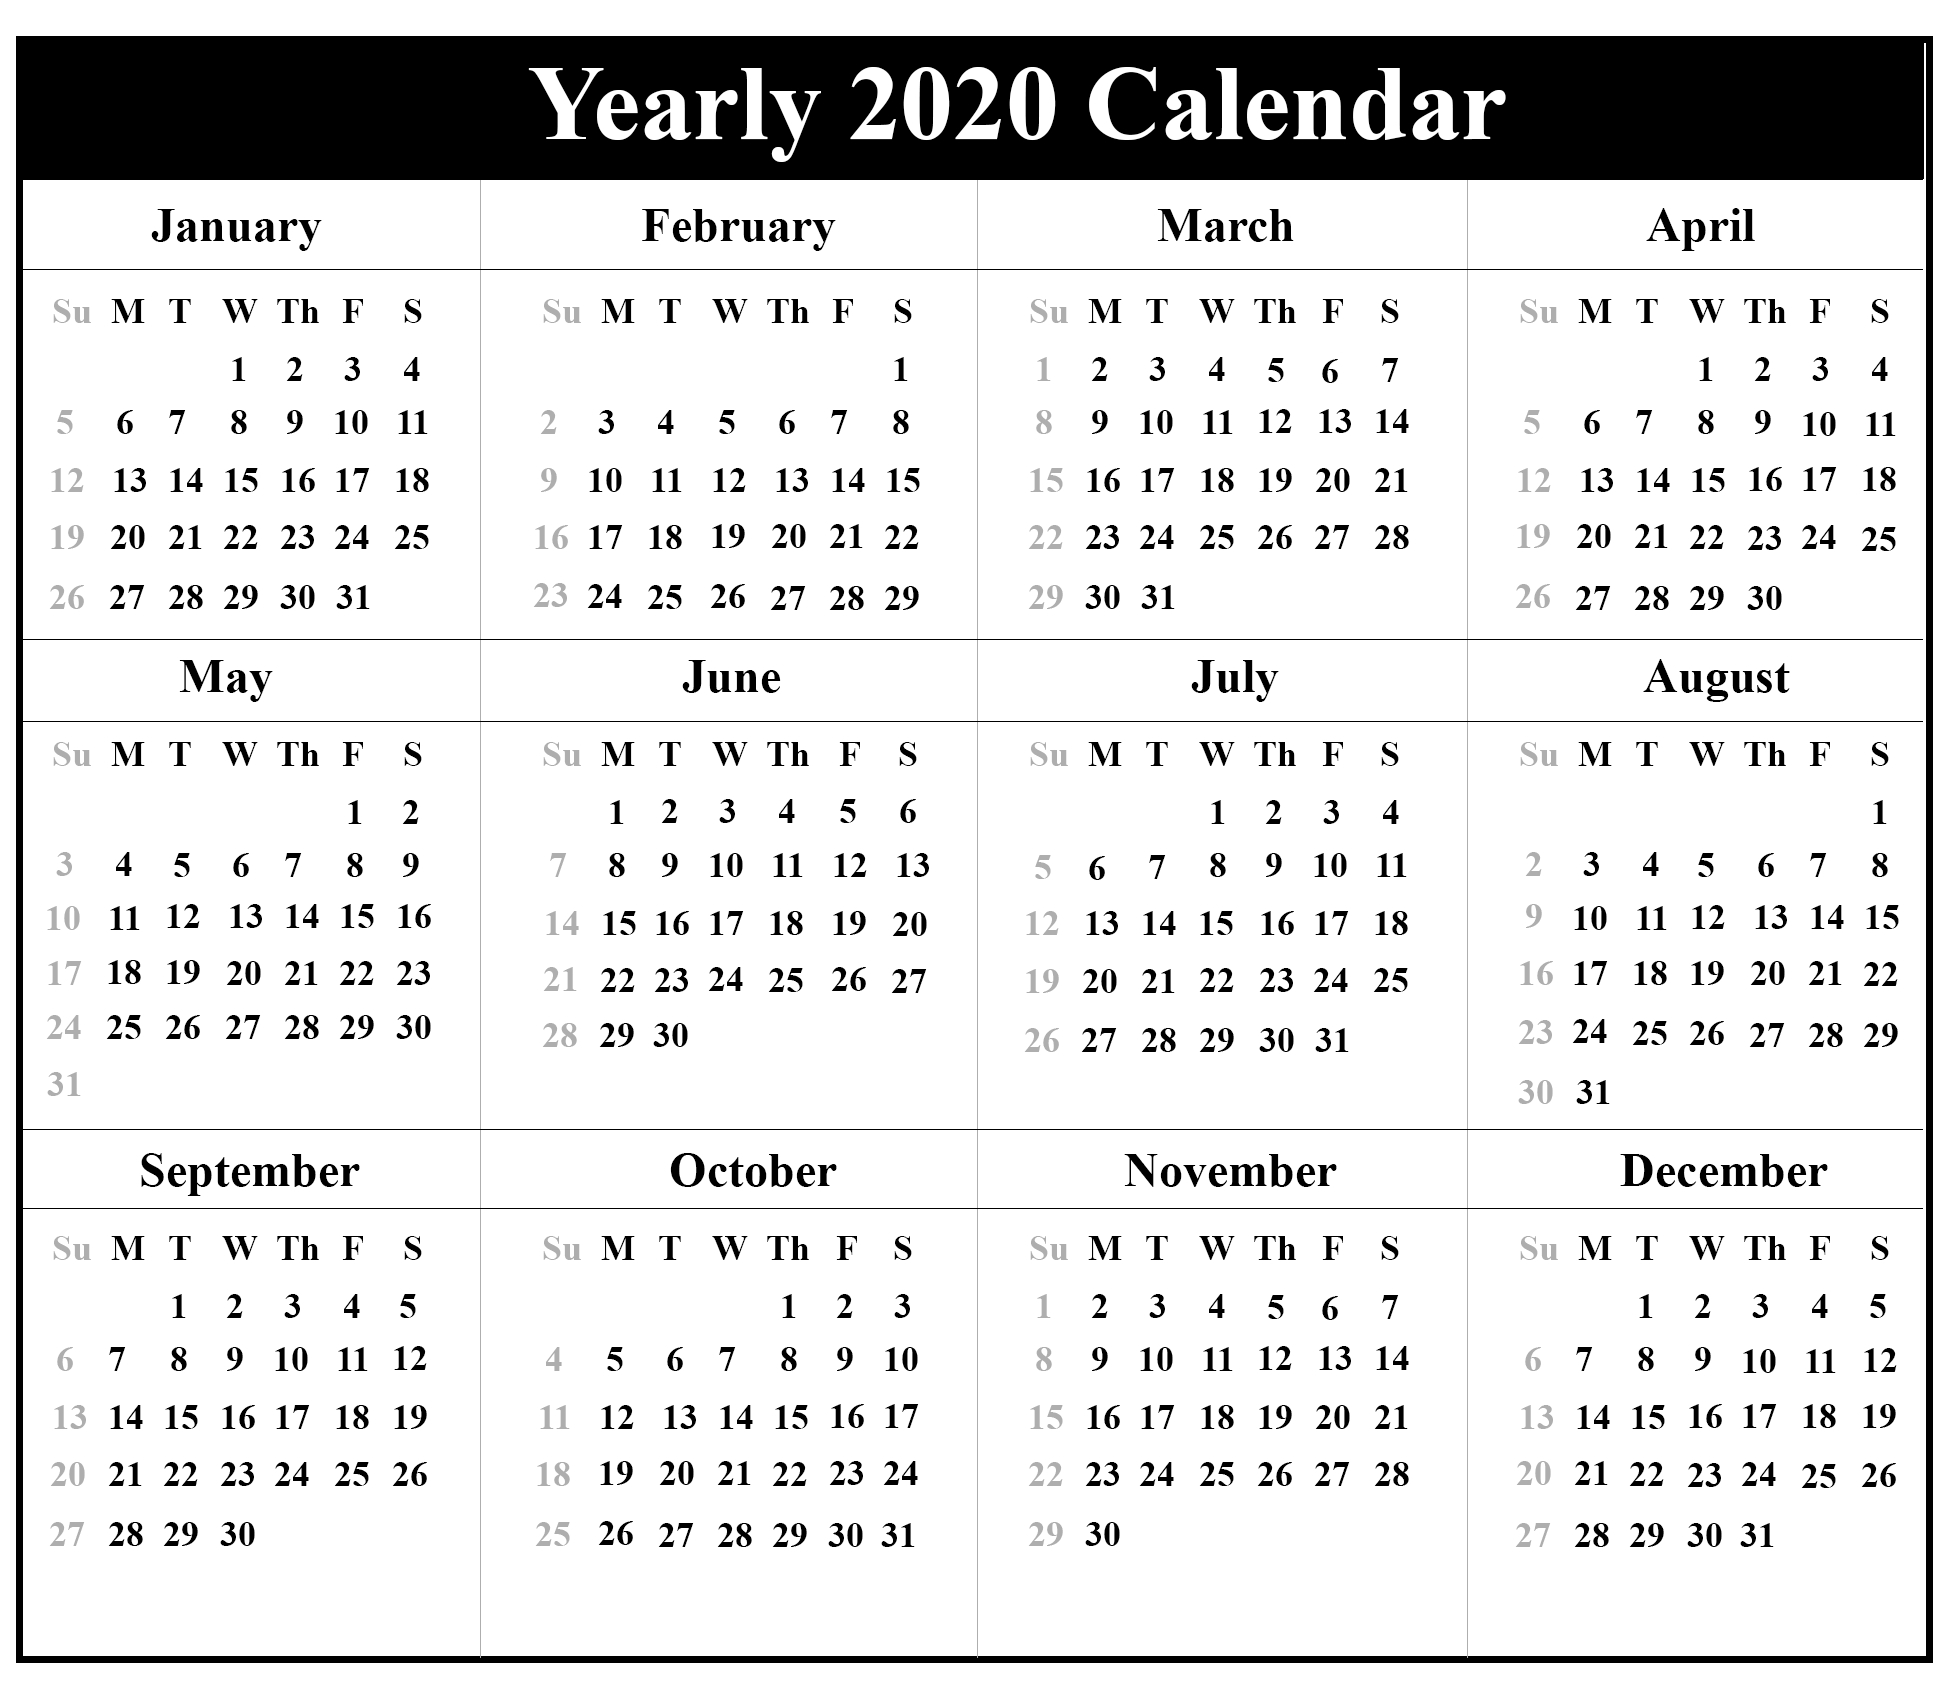 Printable Yearly Calendar 2020 Template With Holidays [Pdf-January 2020 Islamic Calendar